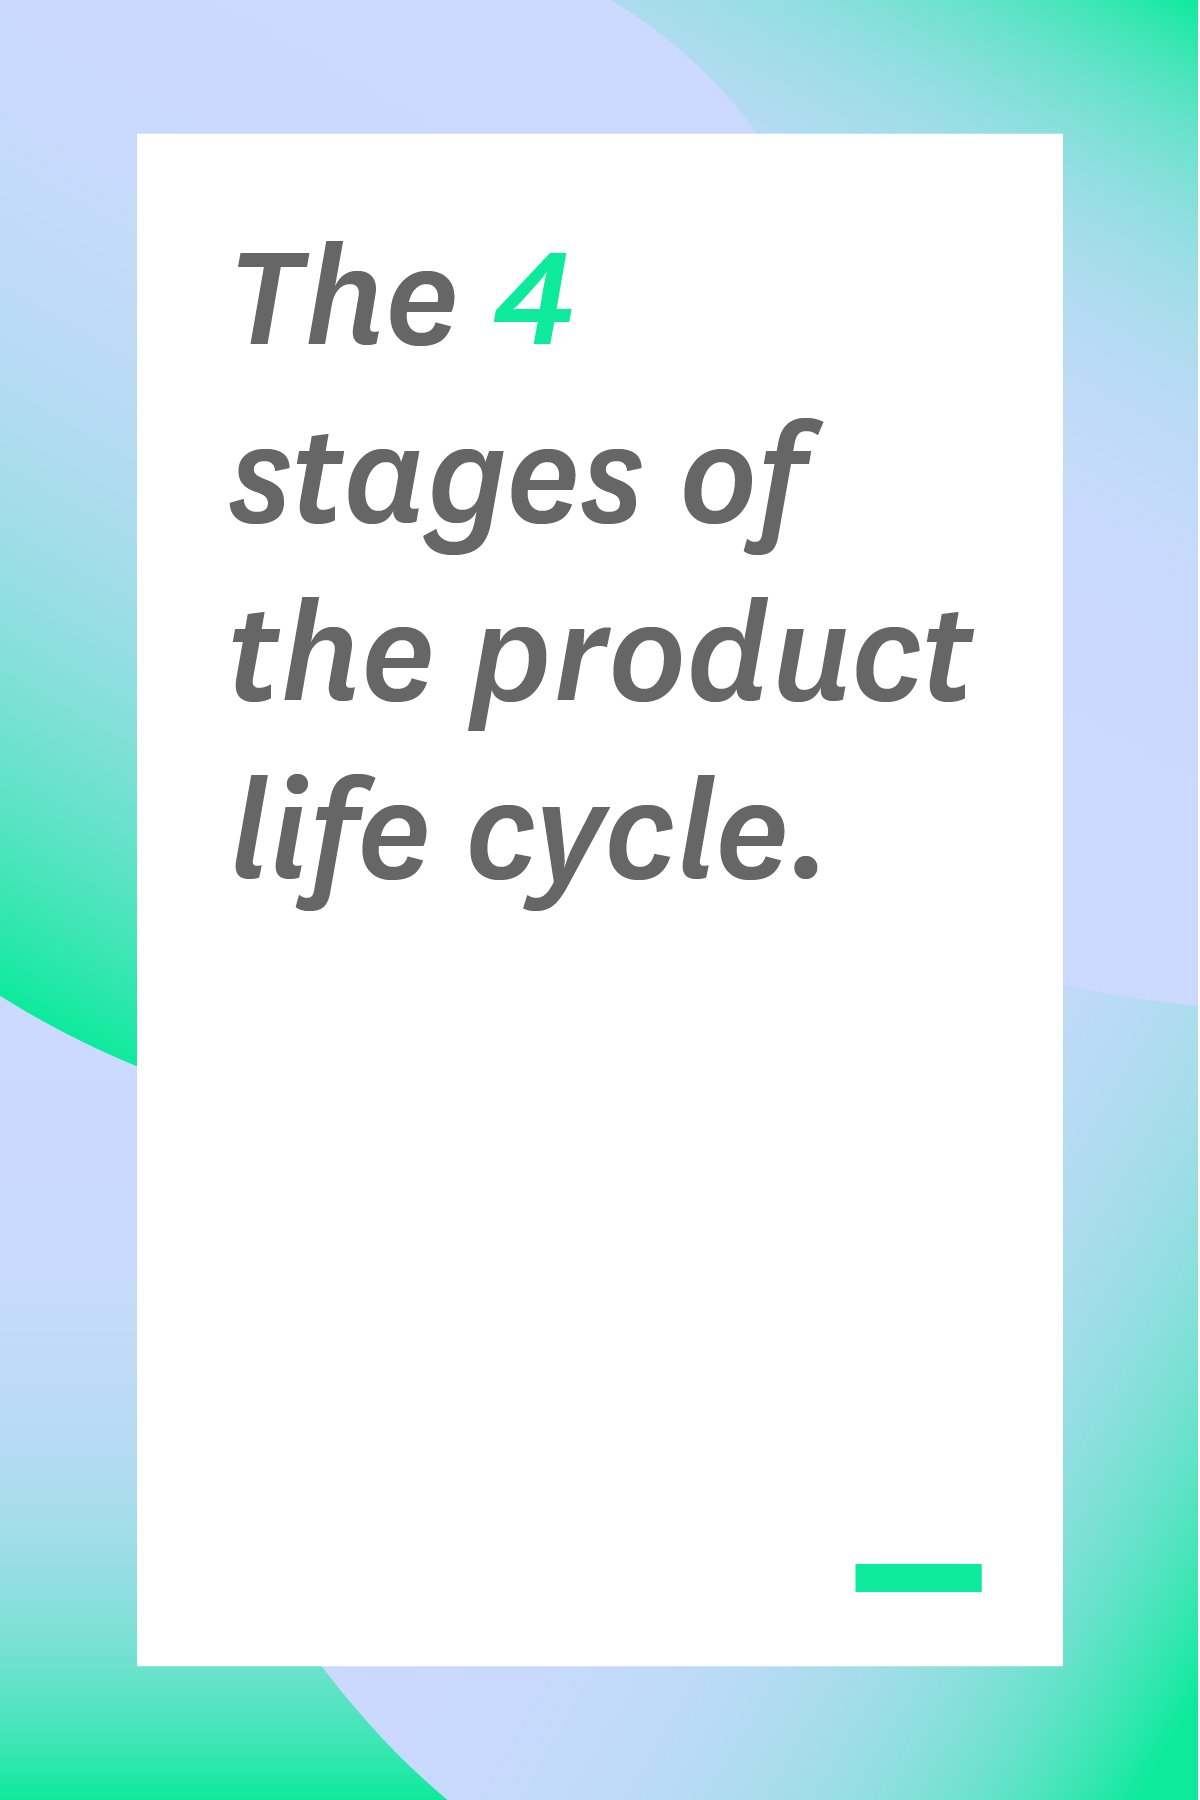 The product life cycle not only explains how sales trends work over the lifetime of a product. It also helps dictate marketing efforts and how much support is needed to enable the product's future success. Here's a great overview of the product life cycle. #productlifecycle #projectmanagement